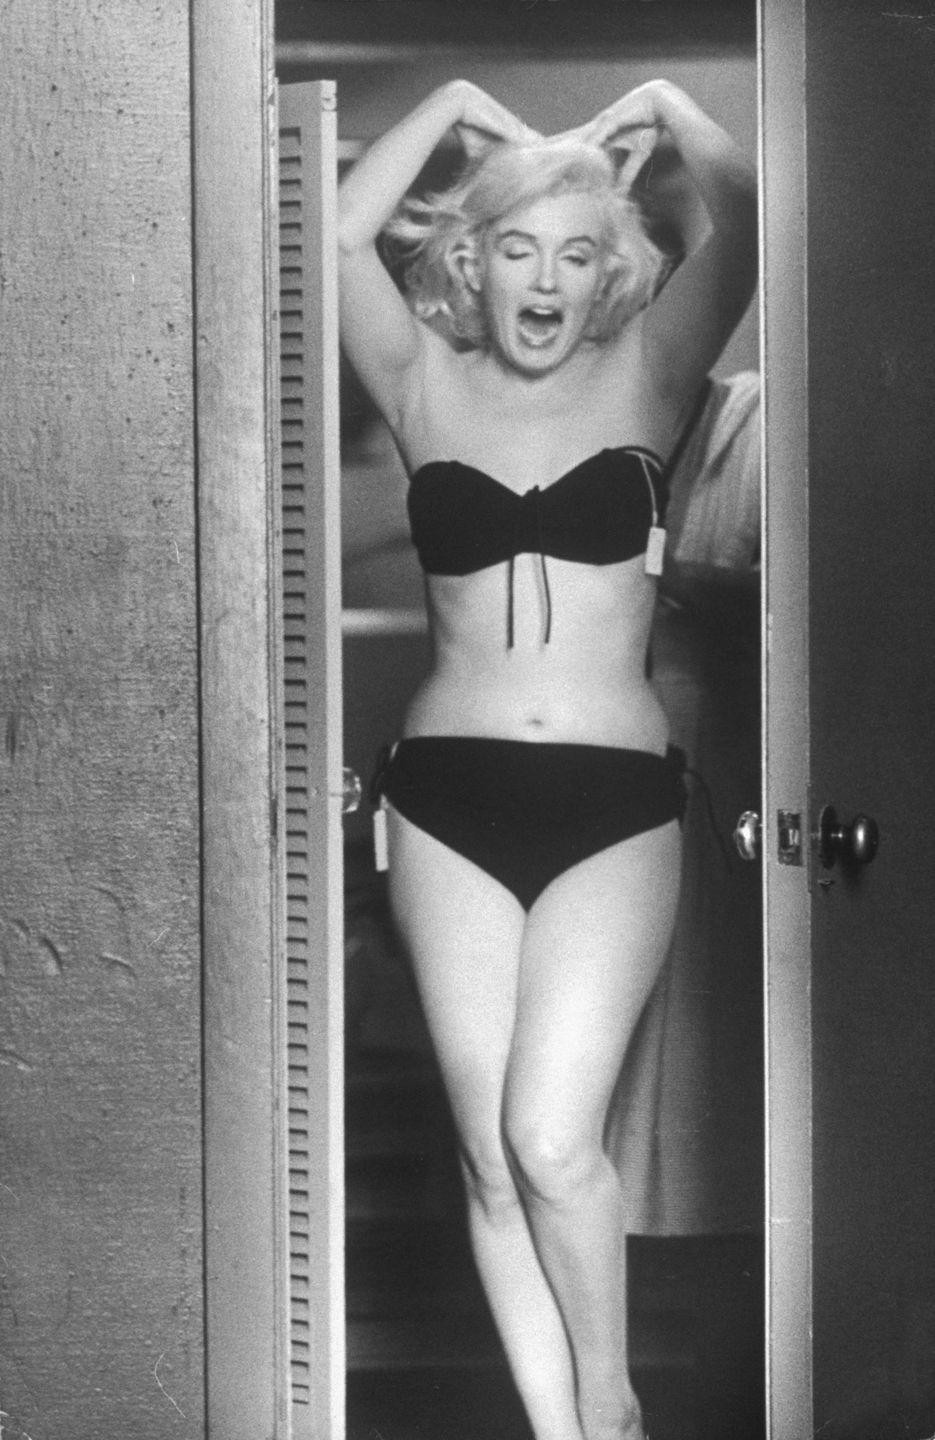 <p>The actress poses for husband Arthur in a dressing room doorway after putting on a bikini she purchased. </p>